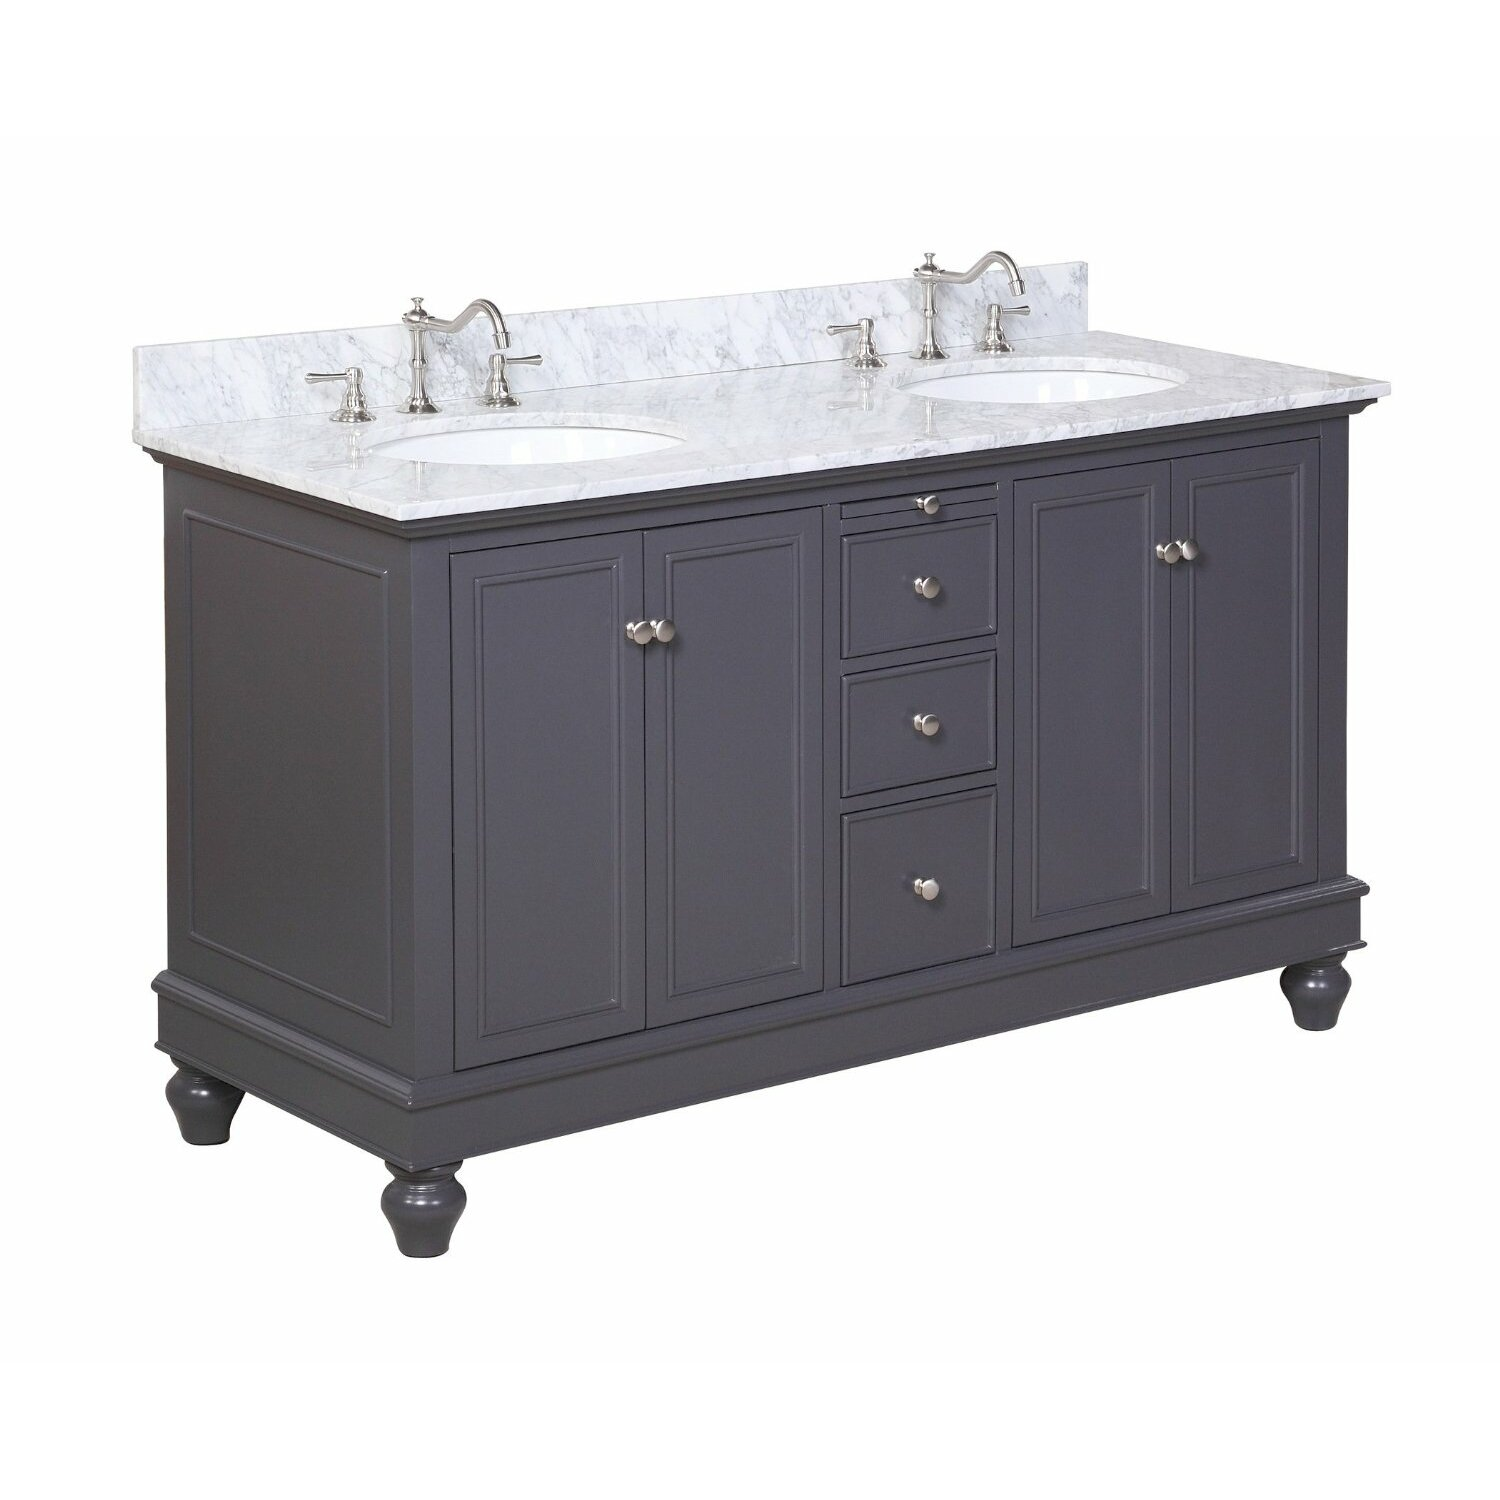 60 Bathroom Cabinet Kbc Bella 60 Double Bathroom Vanity Set Reviews Wayfair